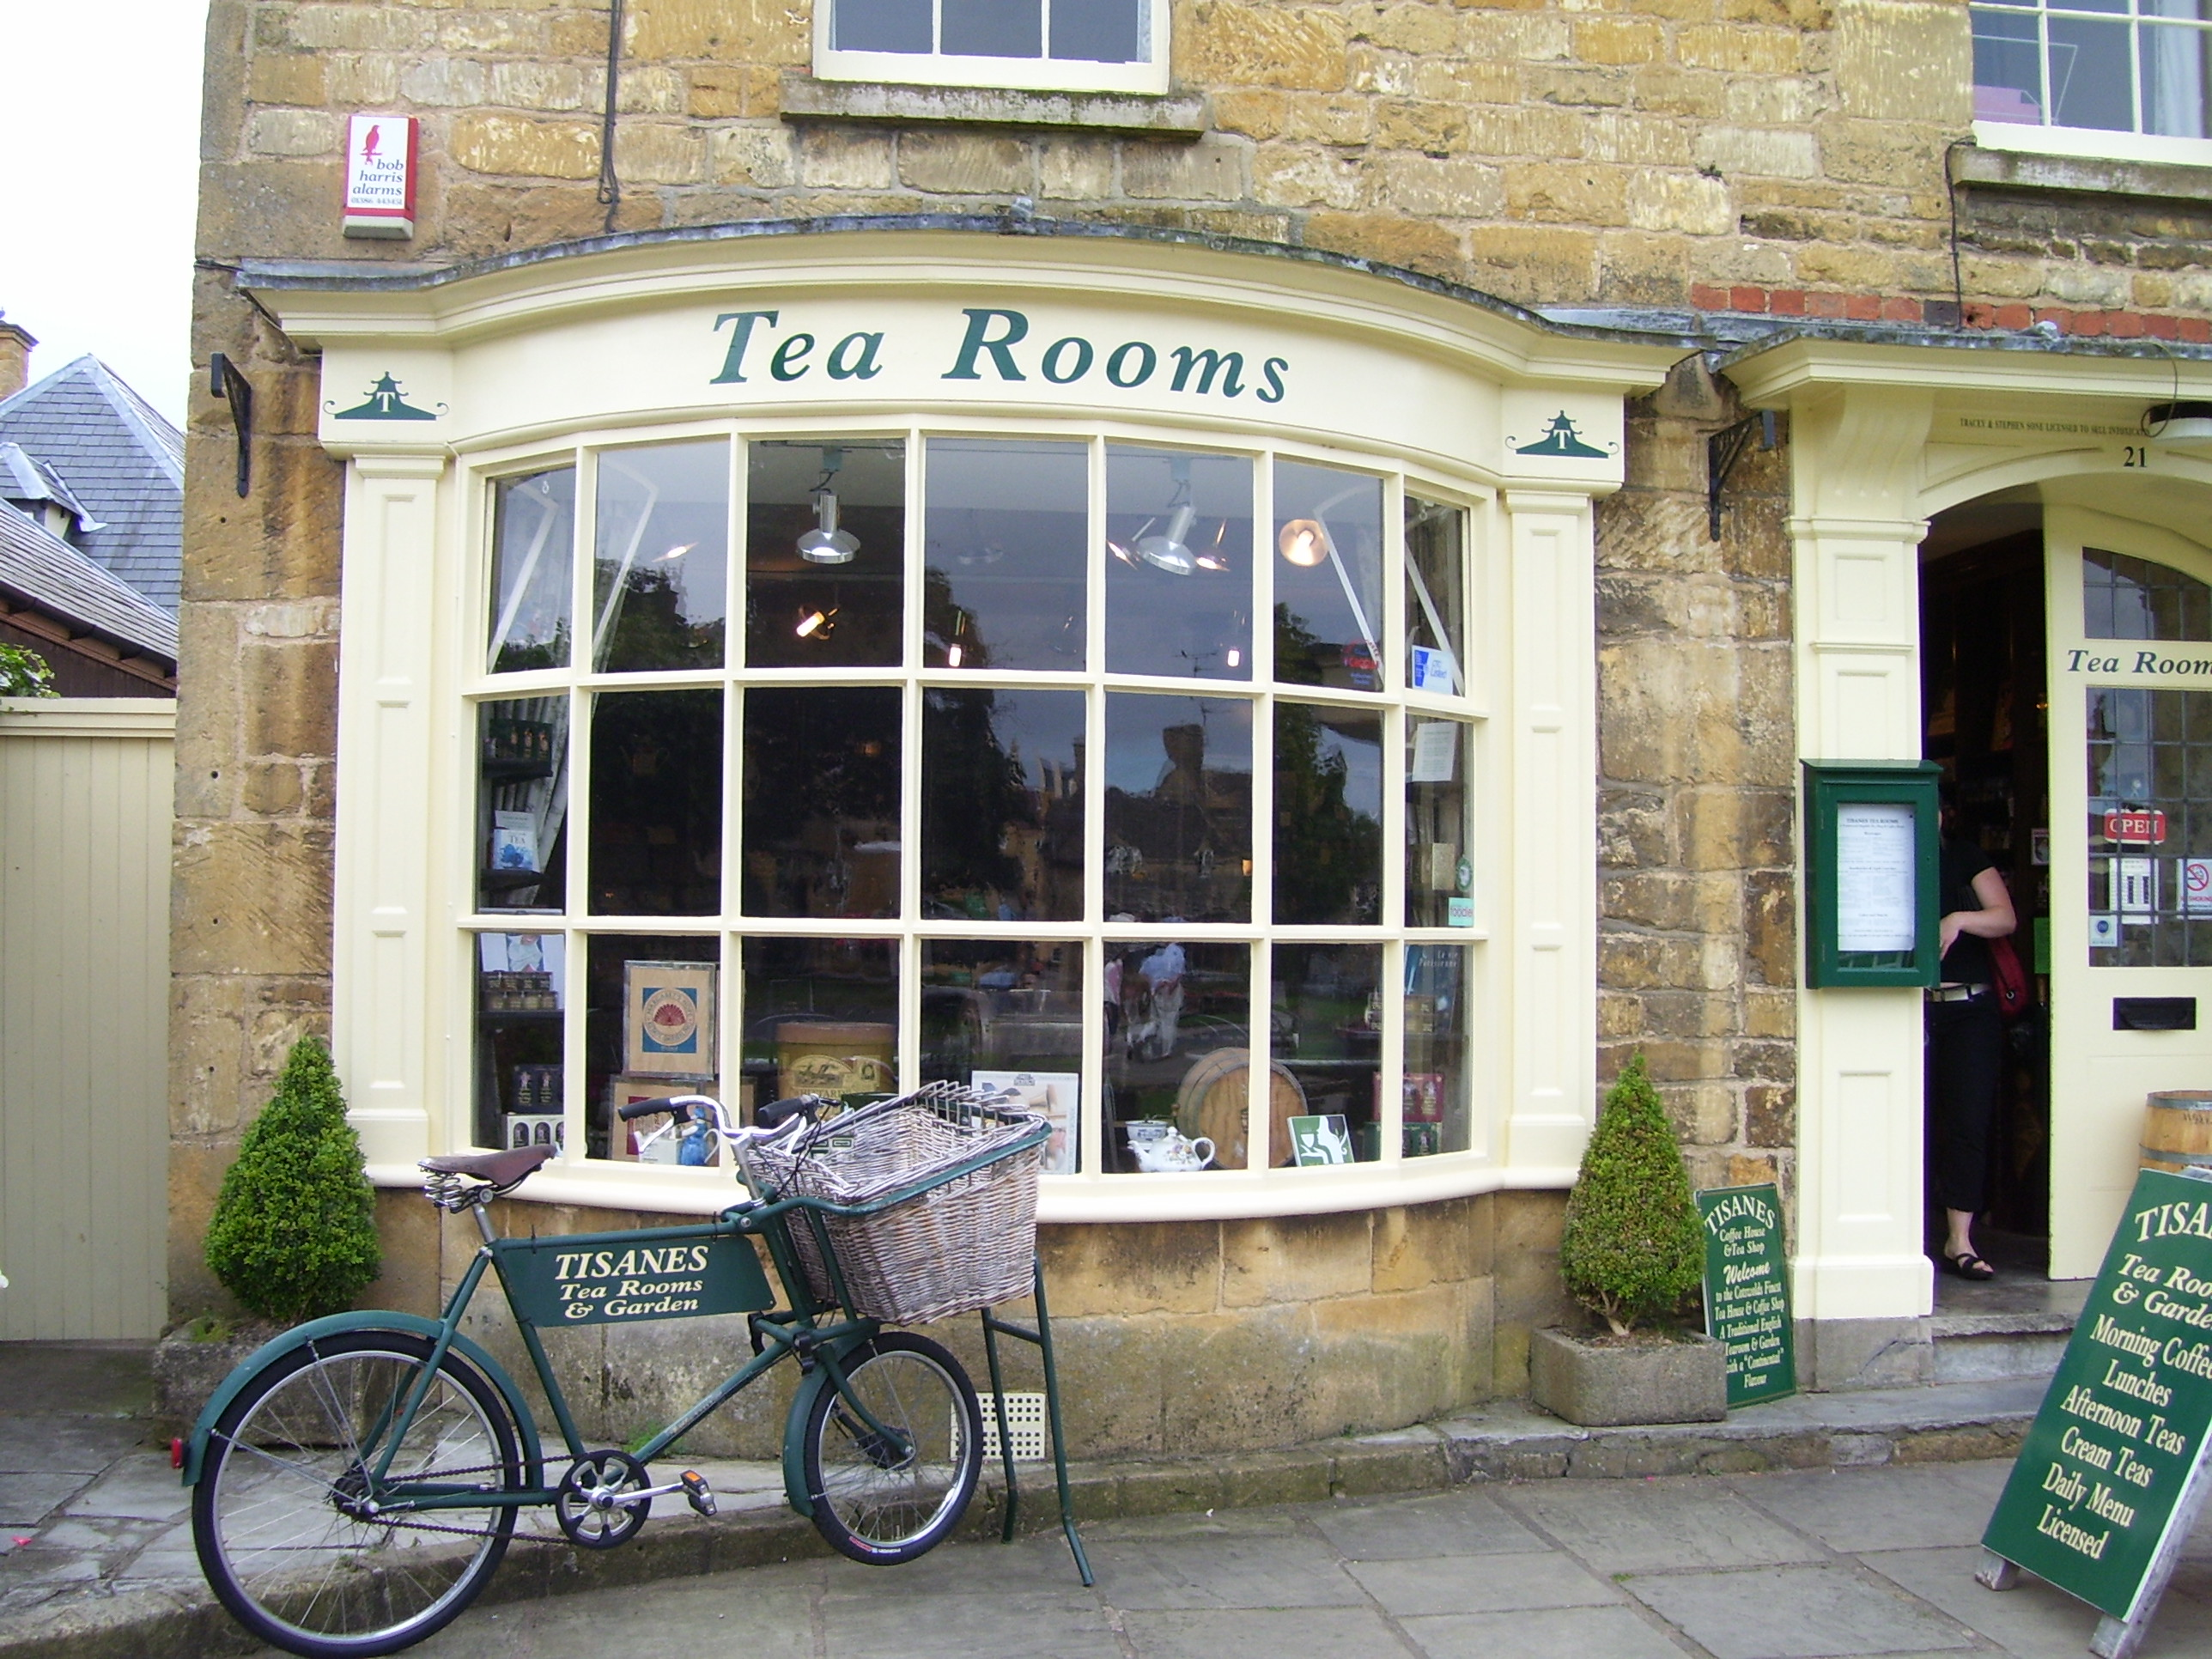 Inspiration for Tea Room